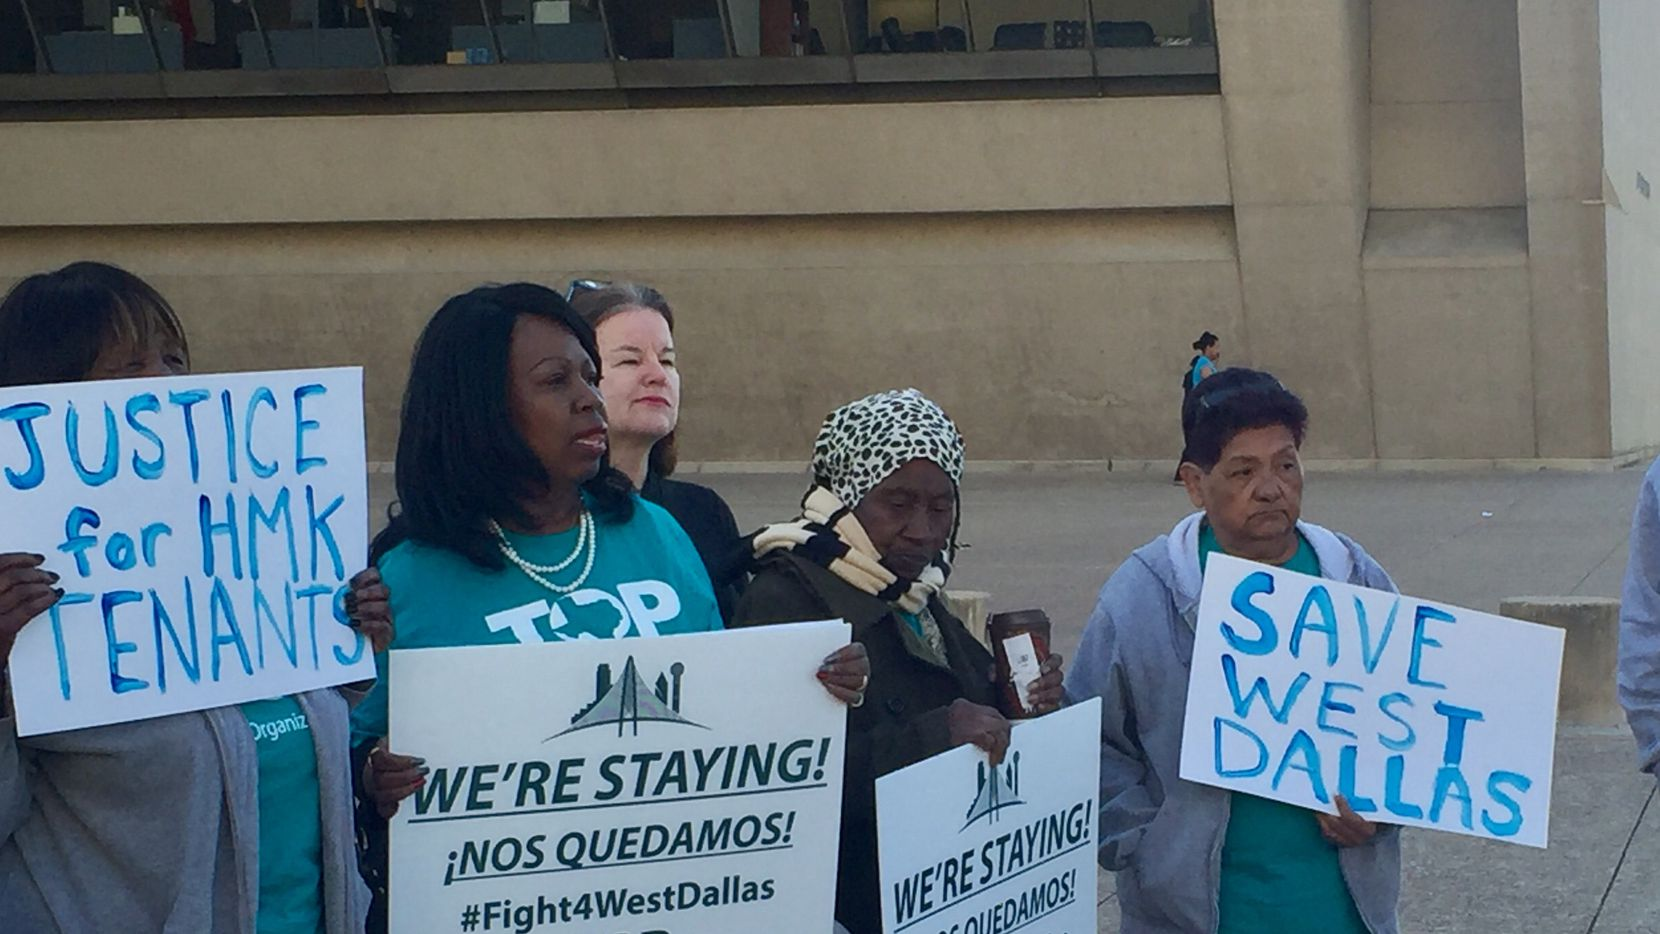 HMK tenants held a news conference Tuesday outside Dallas City Hall on affordable housing. (Dianne Solis/Staff)